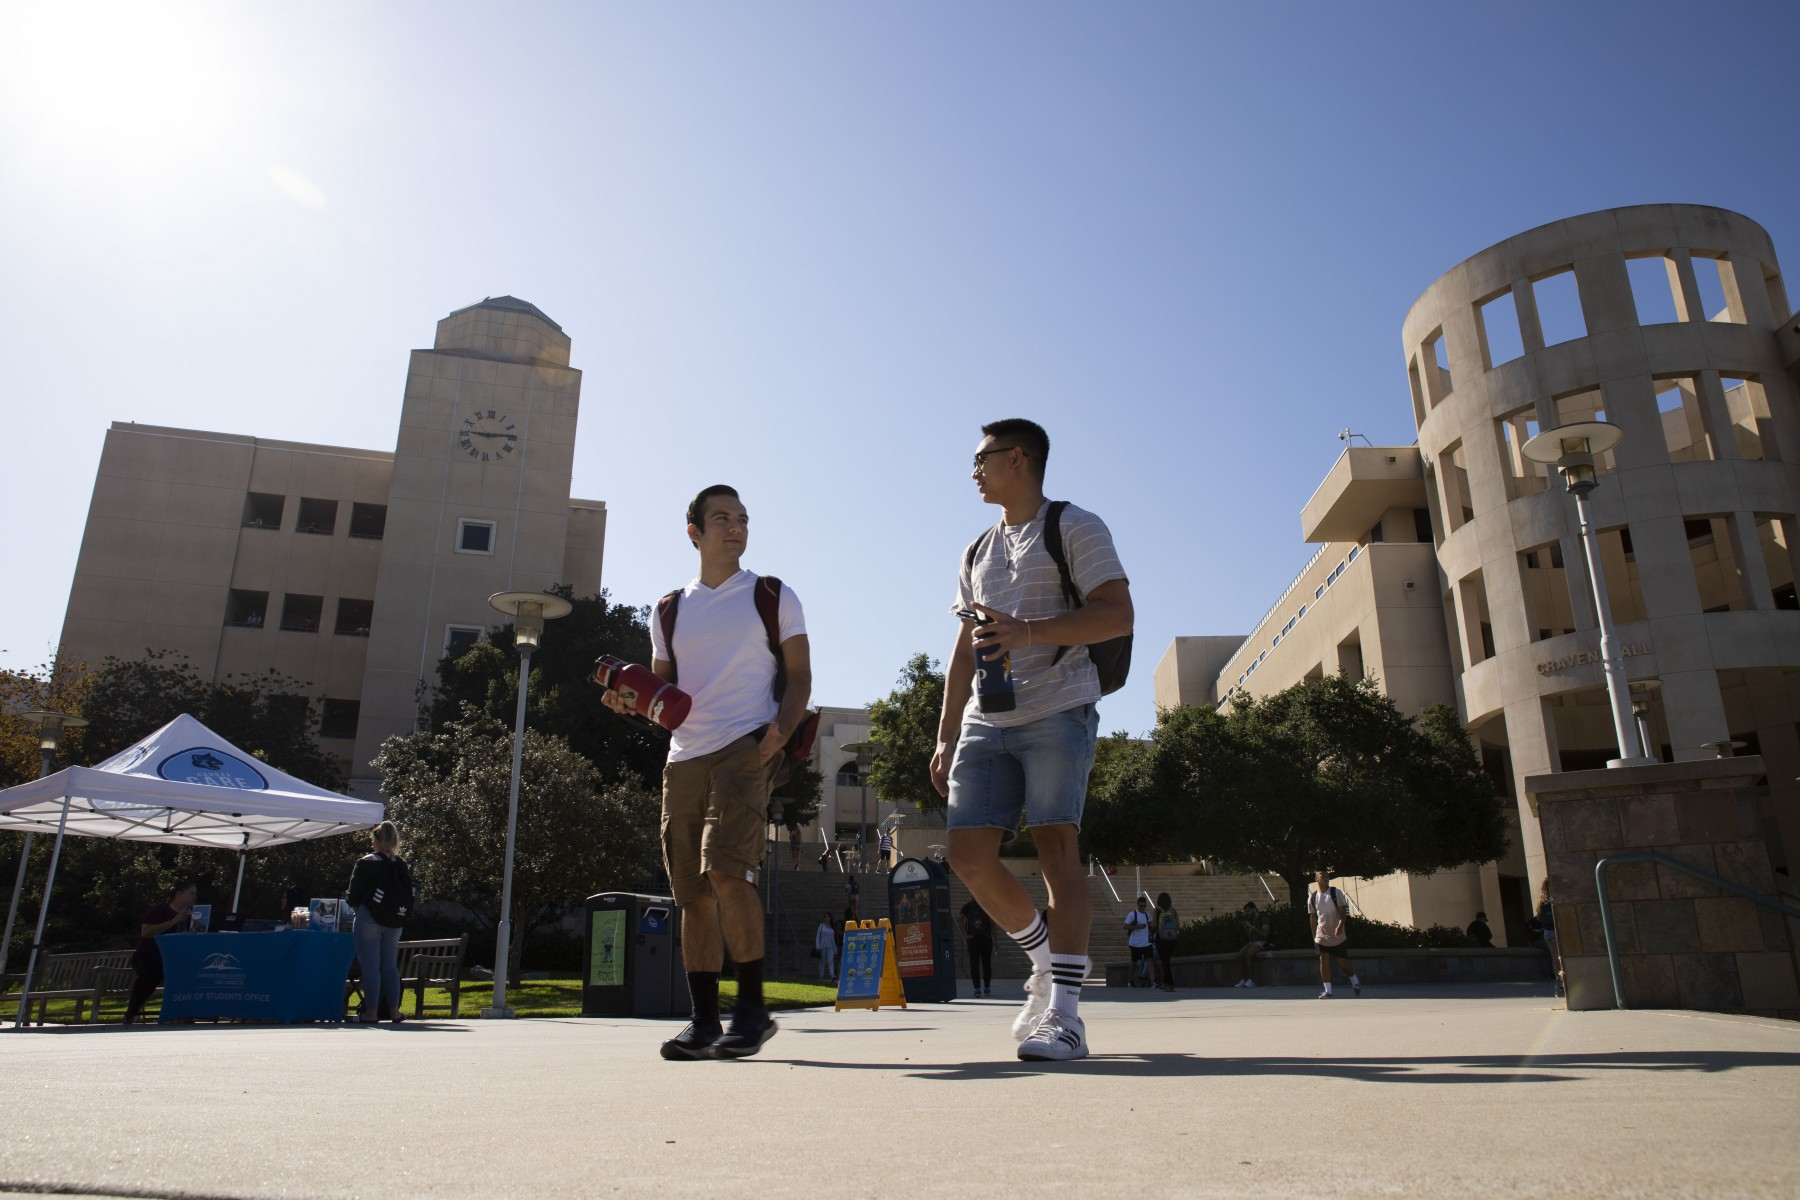 CSUSM welcomes more than 16,000 students for the fall 2019 semester, which began Monday. Photo by Andrew Reed